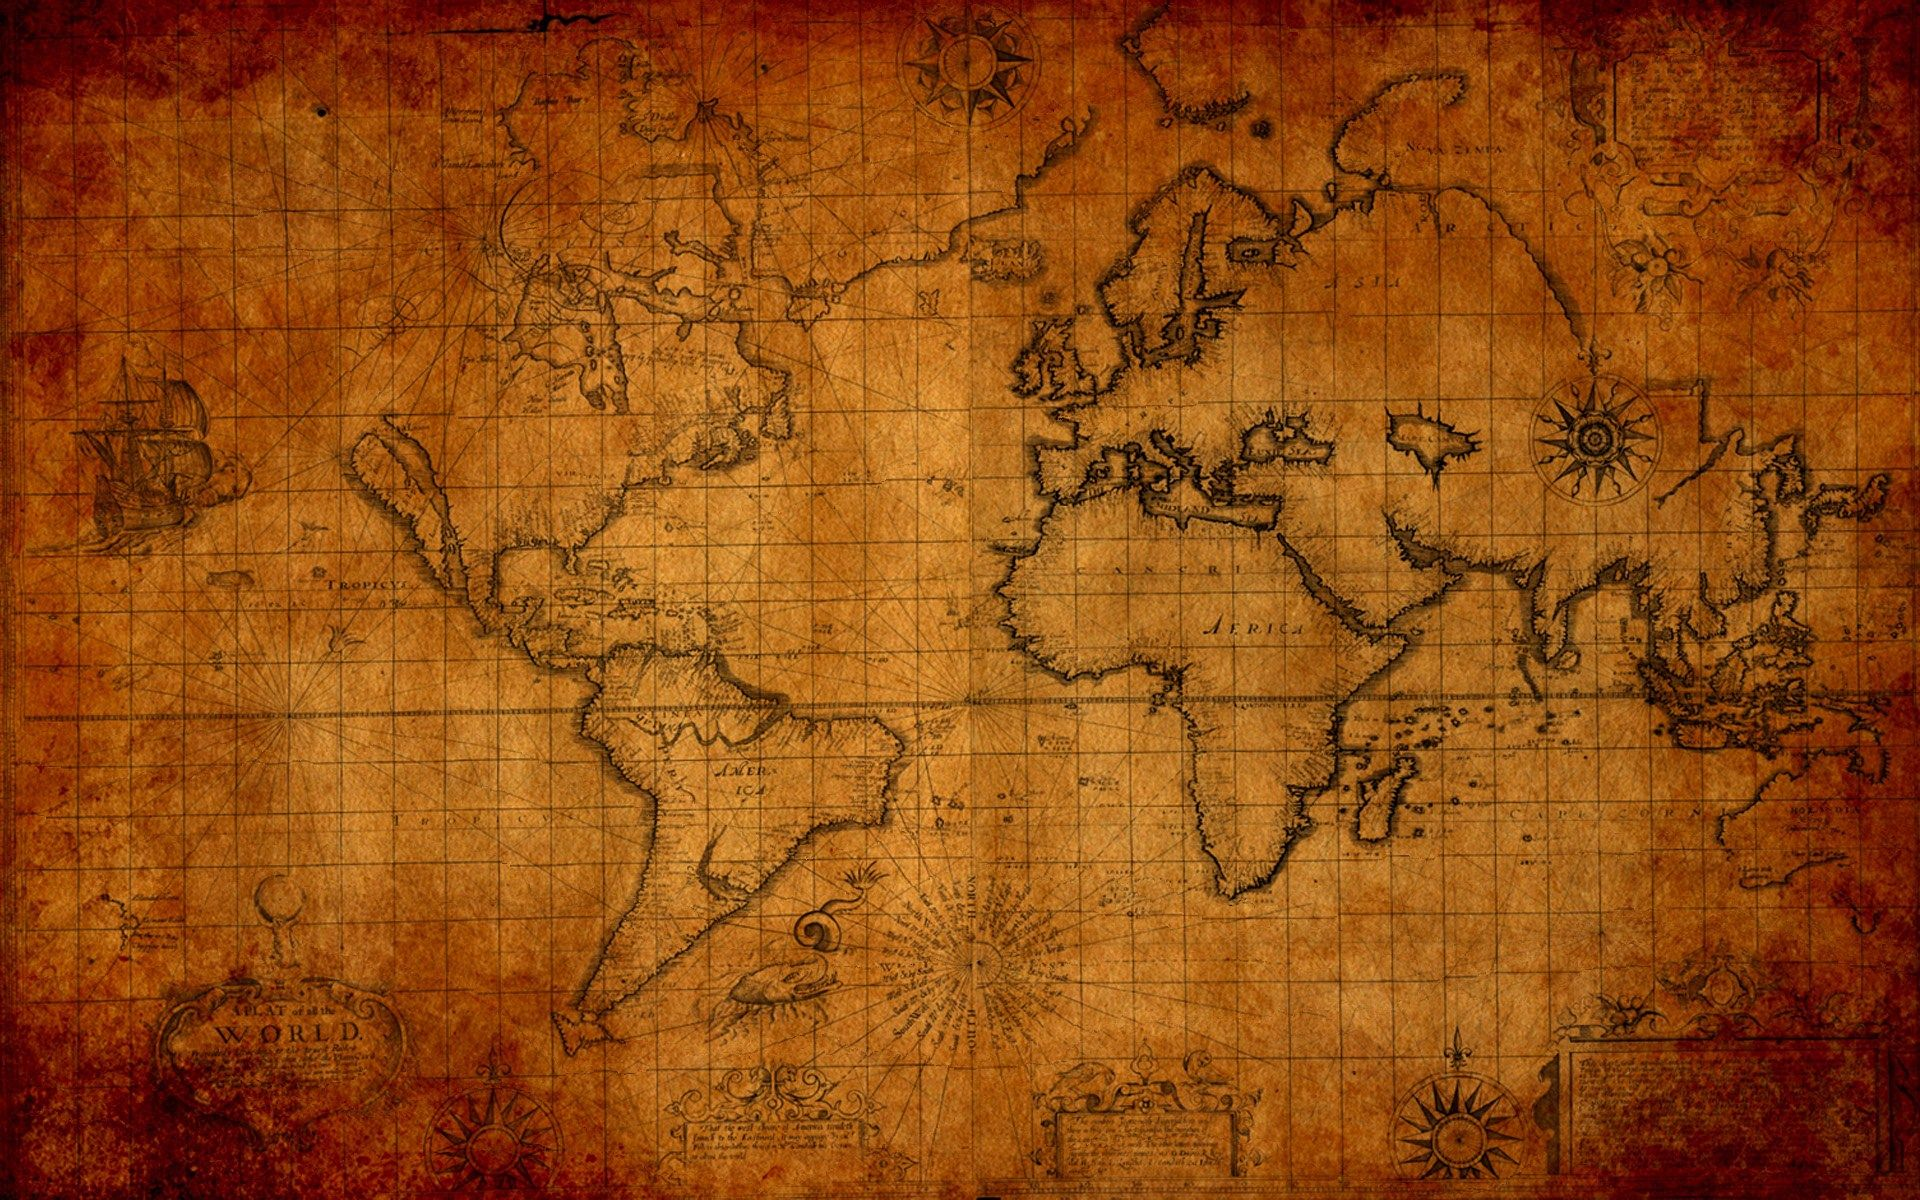 Map Wallpaper Old World Map Desktop Wallpaper For Office